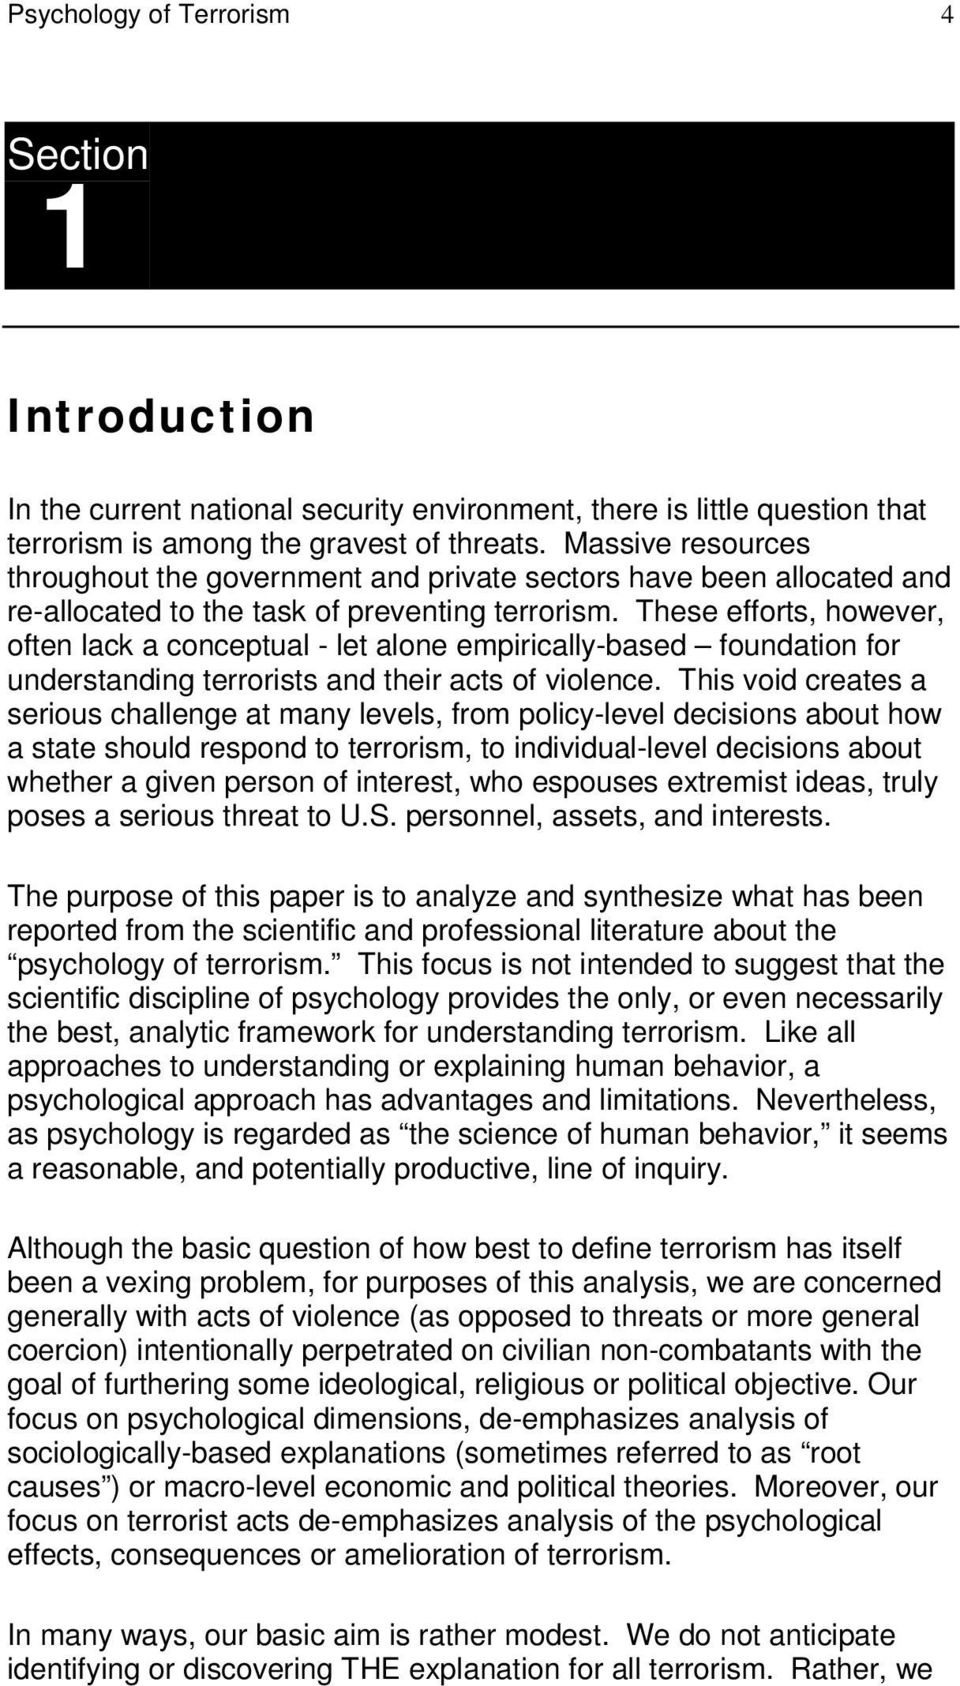 These efforts, however, often lack a conceptual - let alone empirically-based foundation for understanding terrorists and their acts of violence.